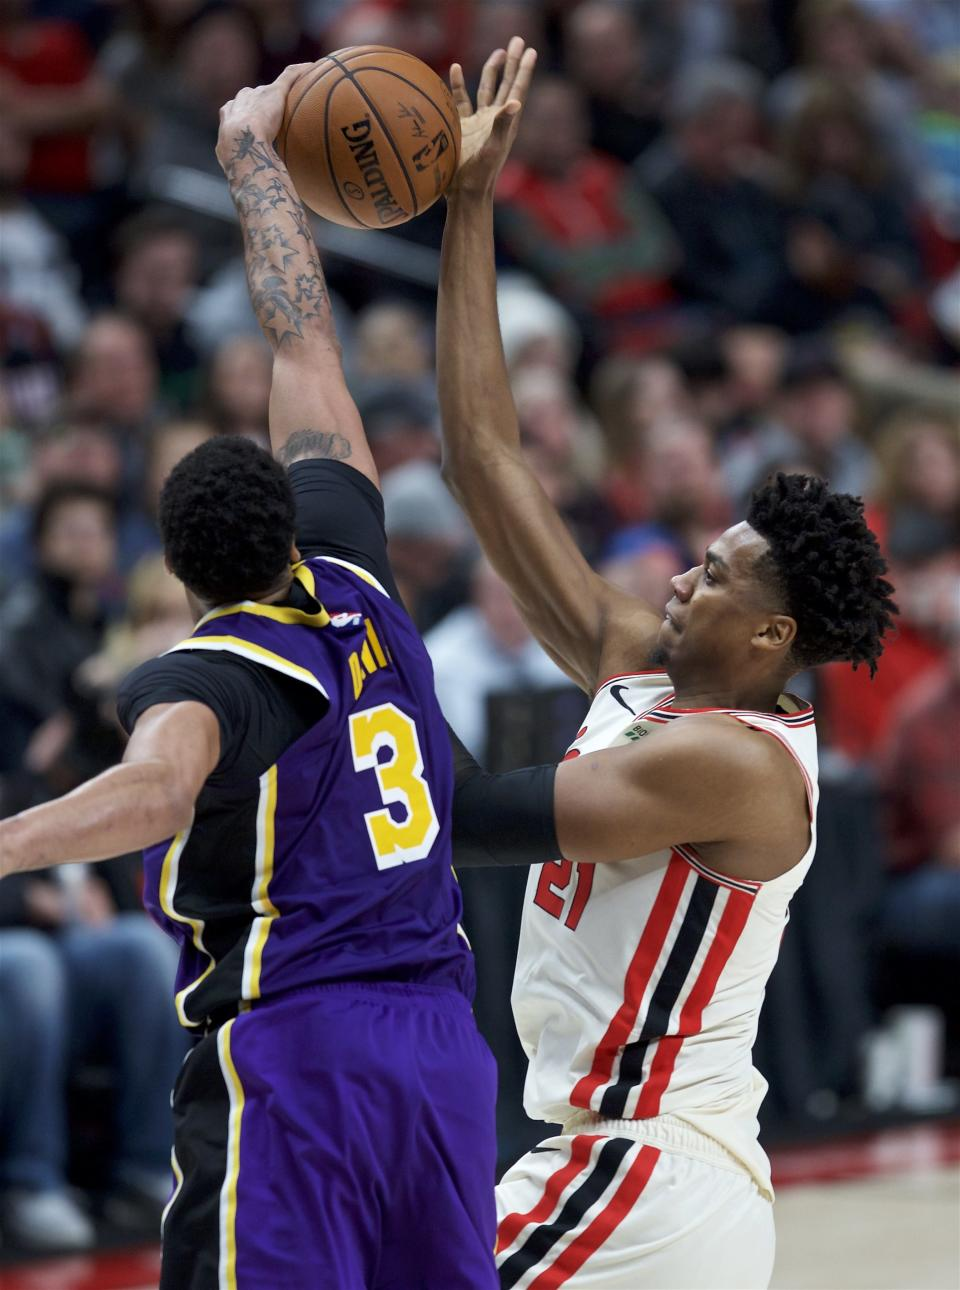 Portland Trail Blazers center Hassan Whiteside, right, has a shot blocked by Los Angeles Lakers forward Anthony Davis during the second half of an NBA basketball game in Portland, Ore., Friday, Dec. 6, 2019. (AP Photo/Craig Mitchelldyer)